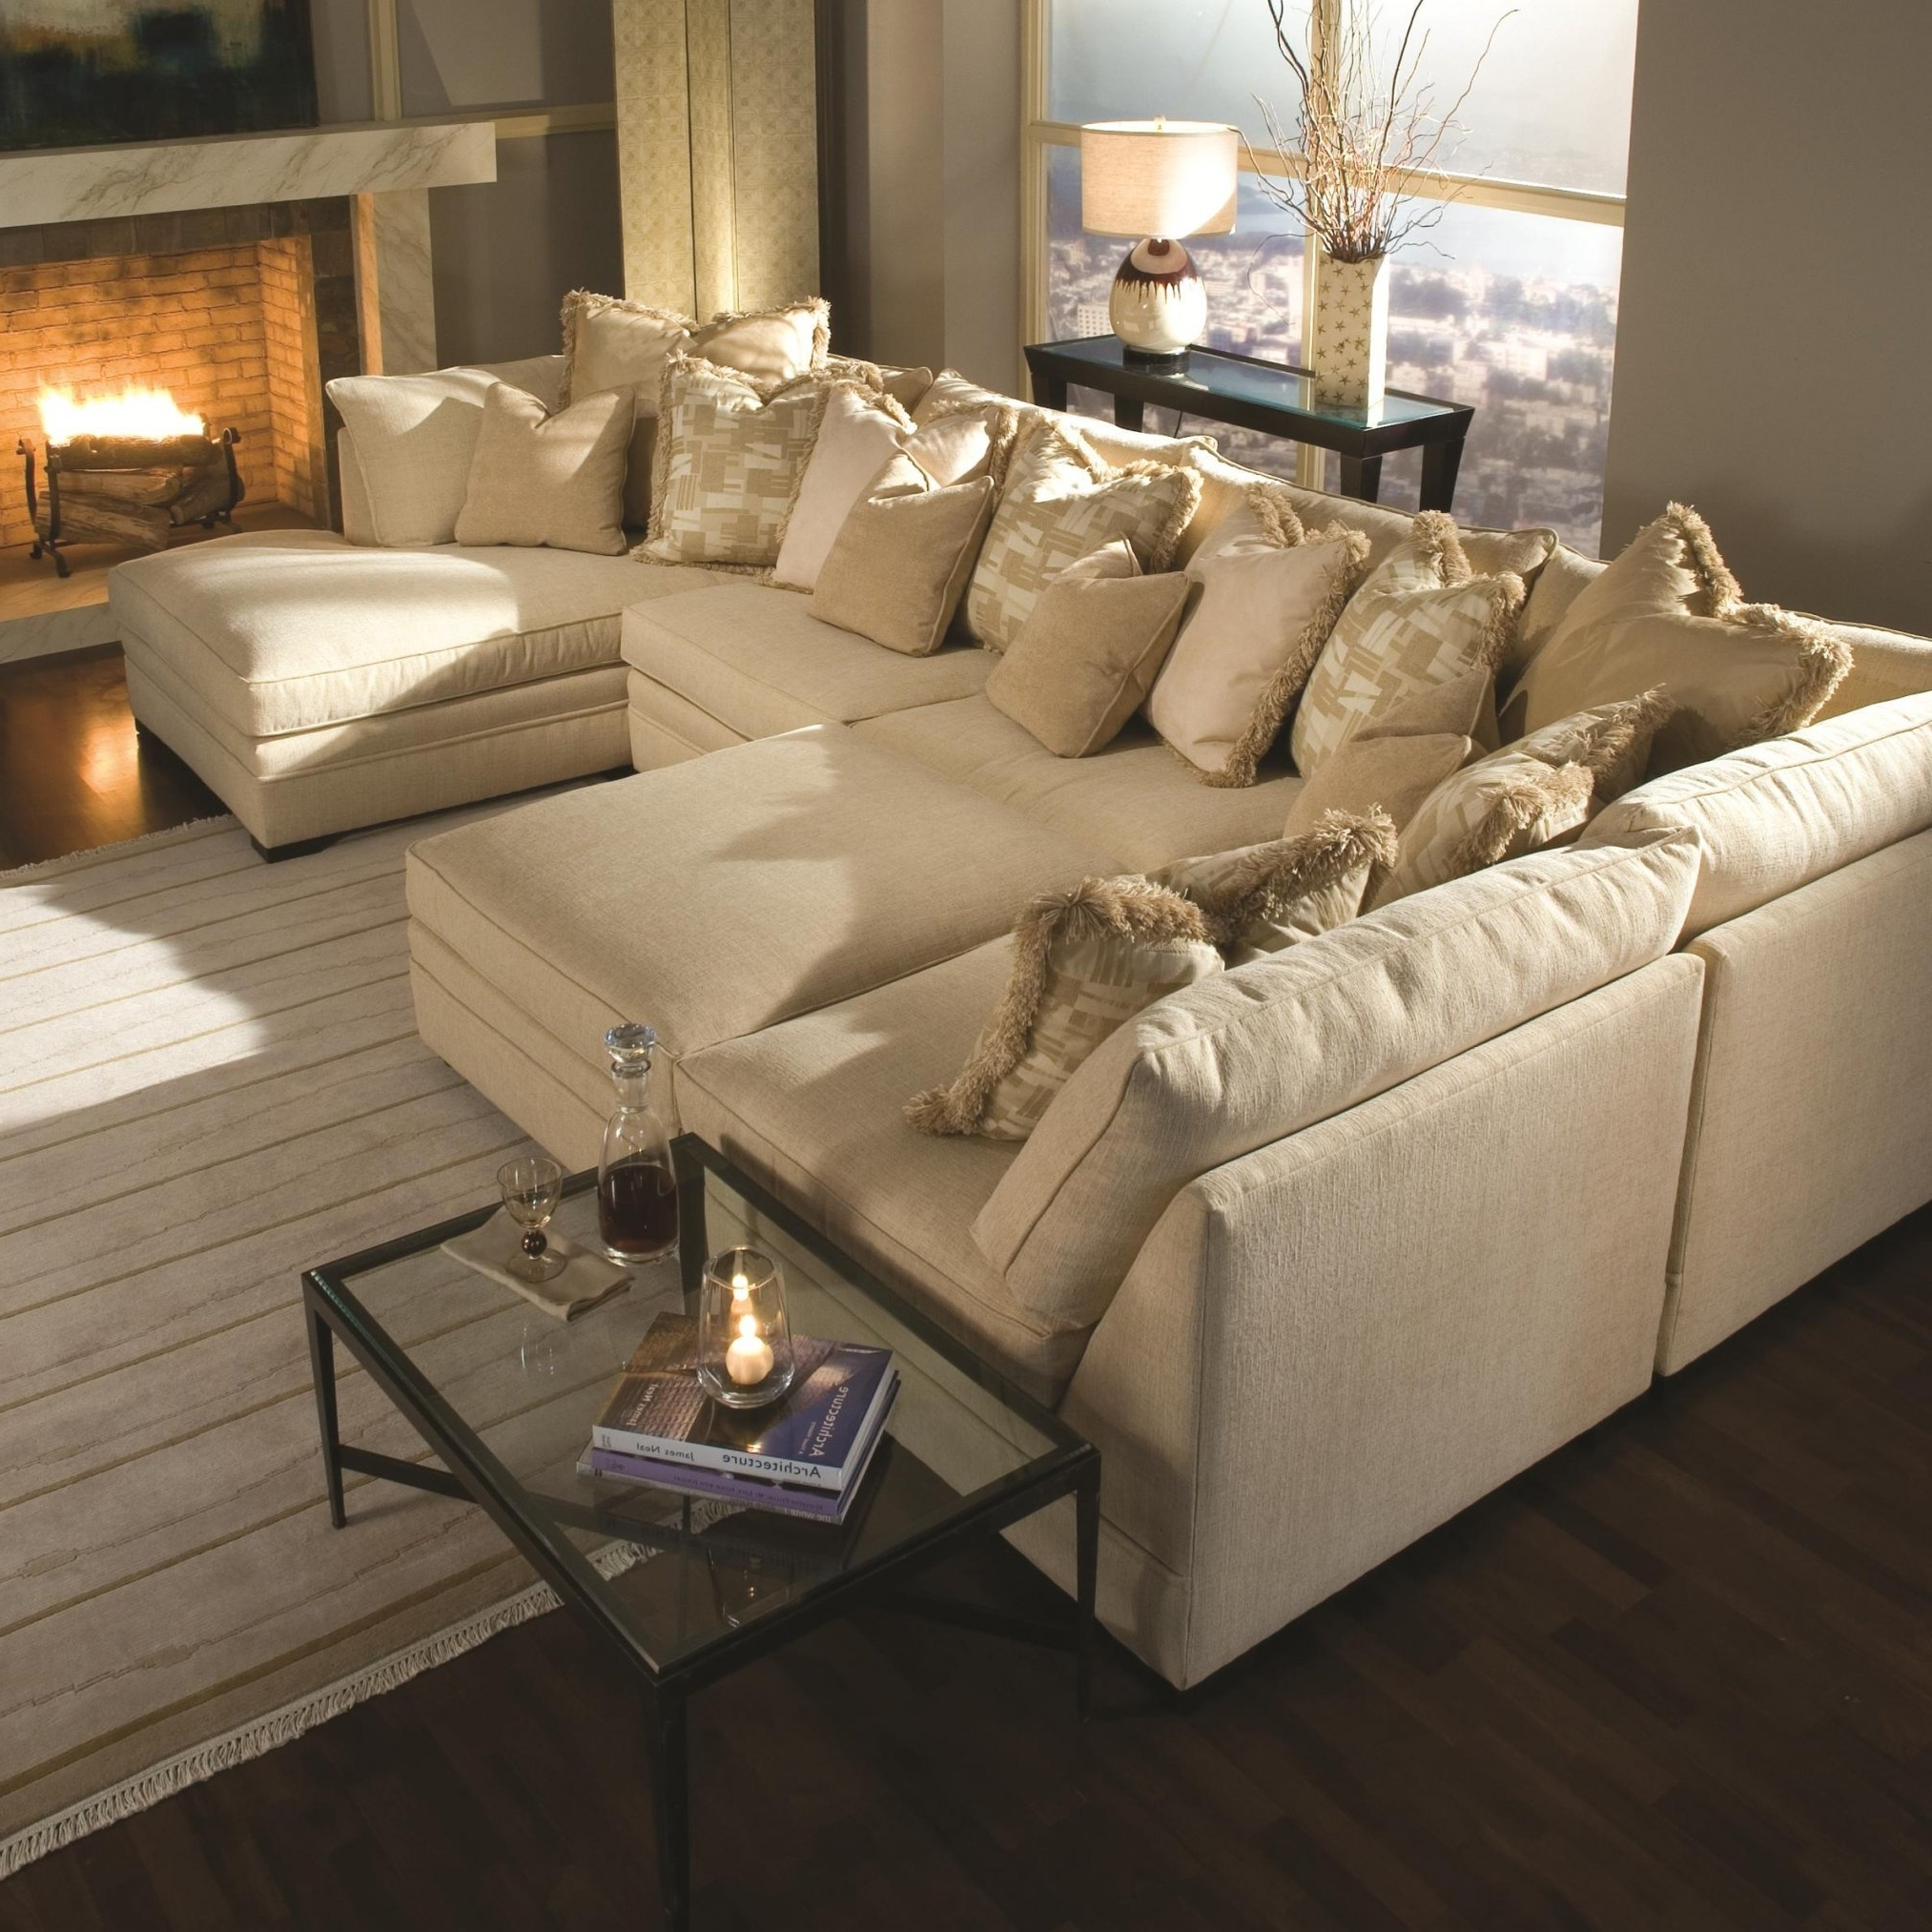 Most Popular Sectional Sofas With Double Chaise With Regard To House 7100 Contemporary U Shape Sectional Sofa With With Regard To (View 8 of 15)